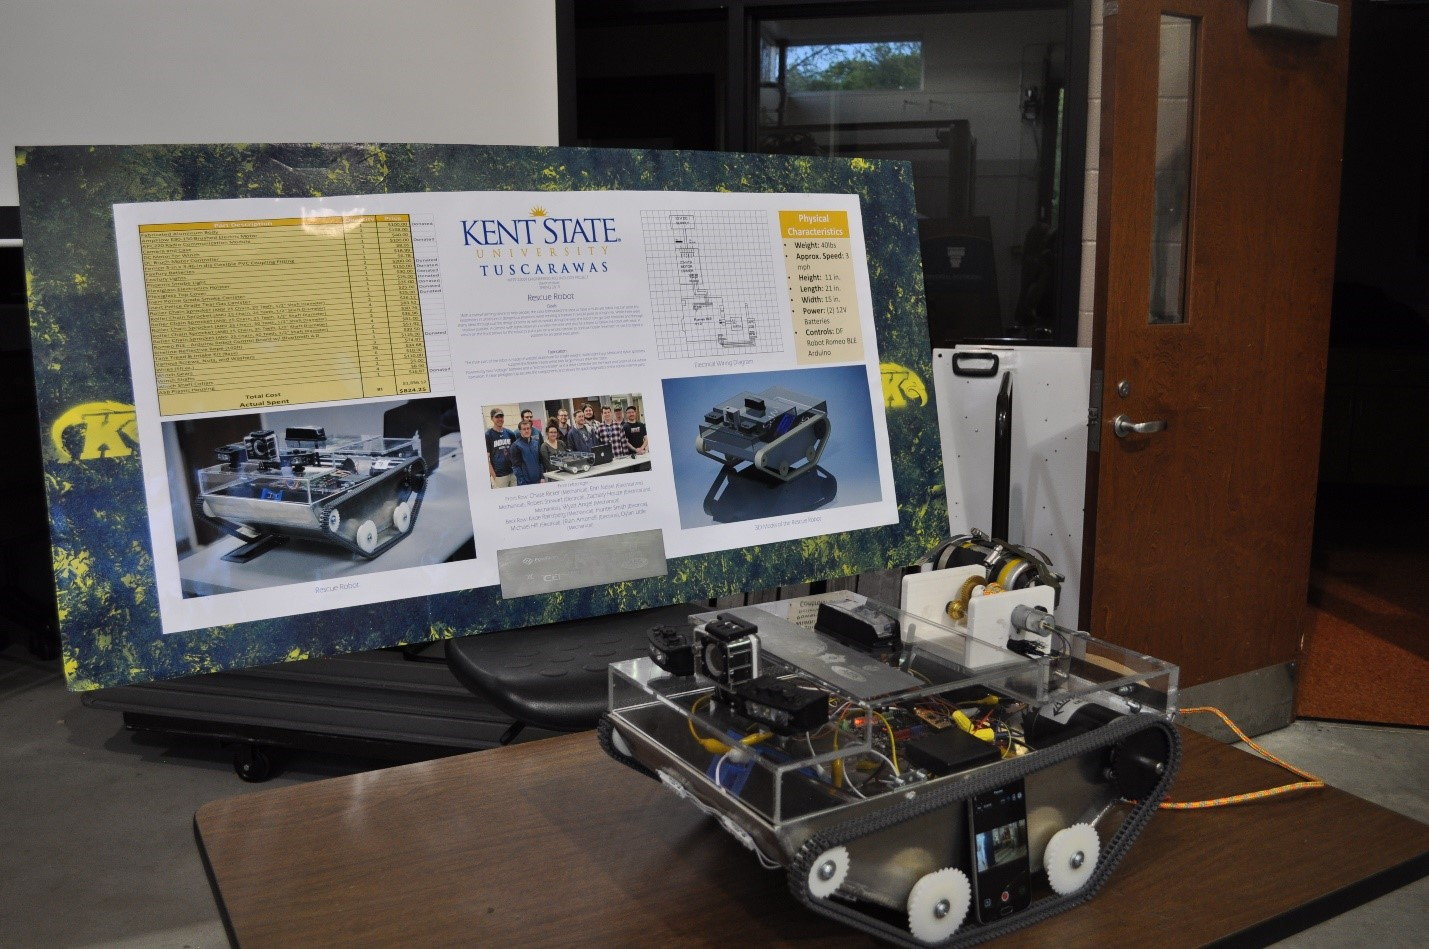 Engineering Technology Project Rescue Robot created by students